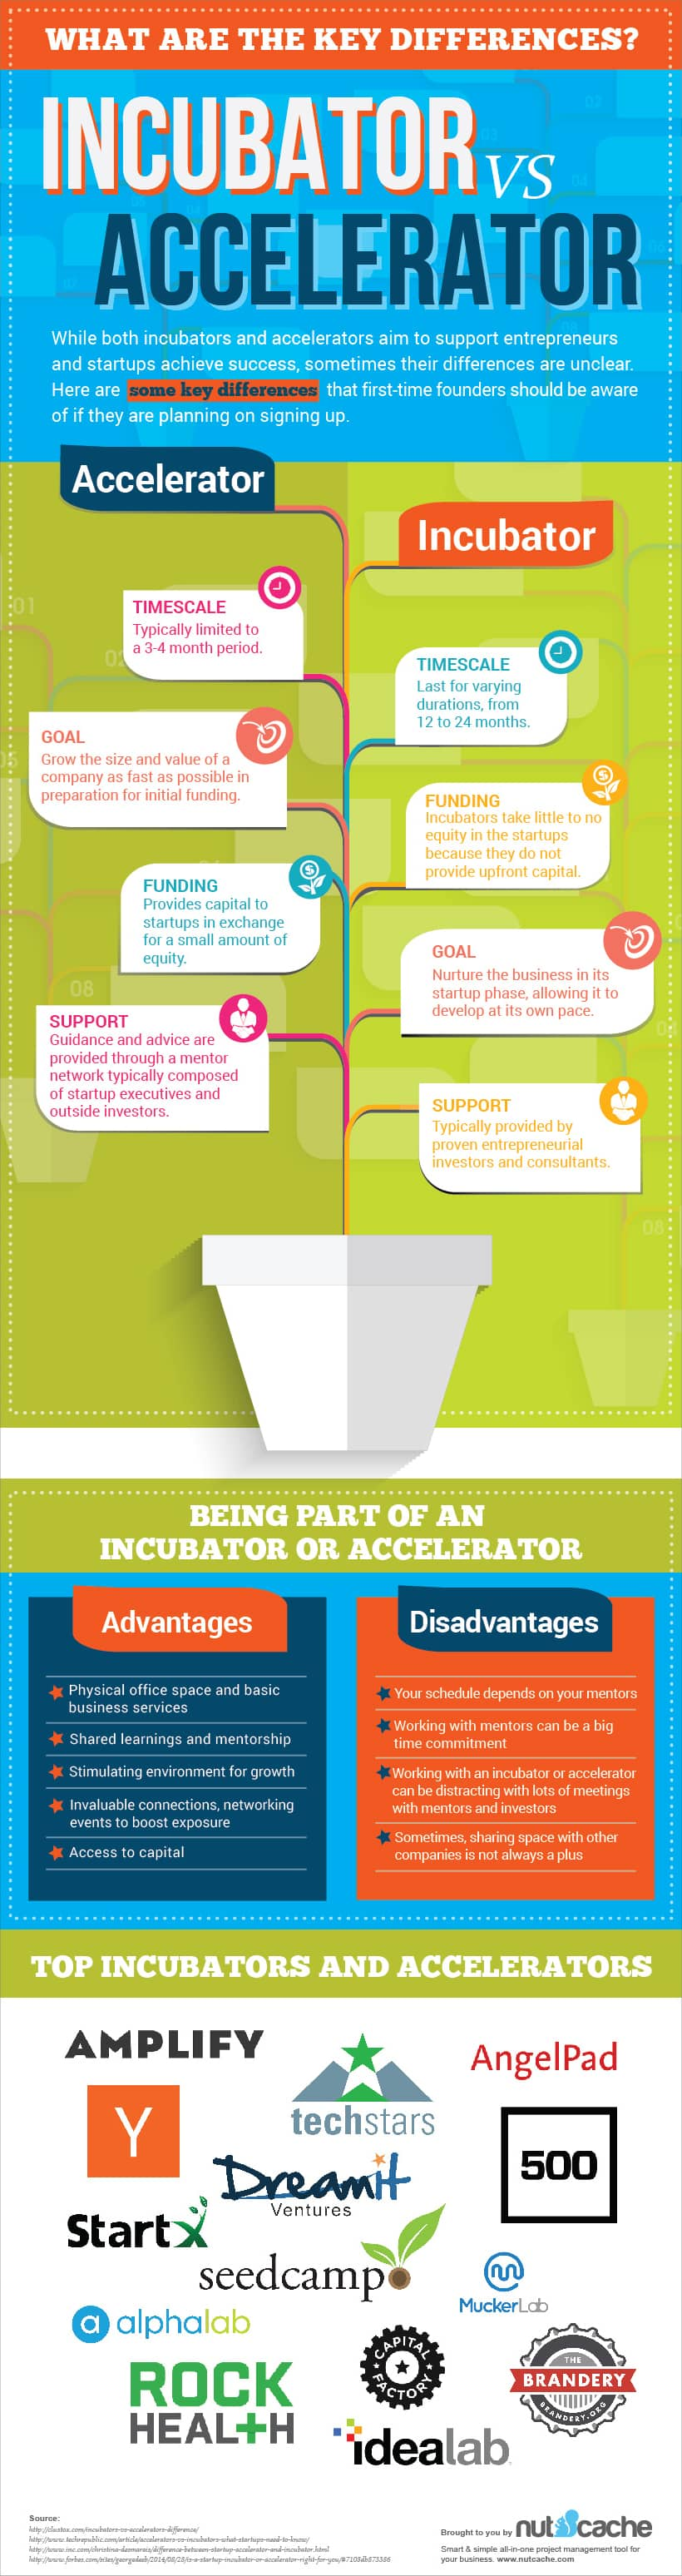 nutcache incubators vs accelerators